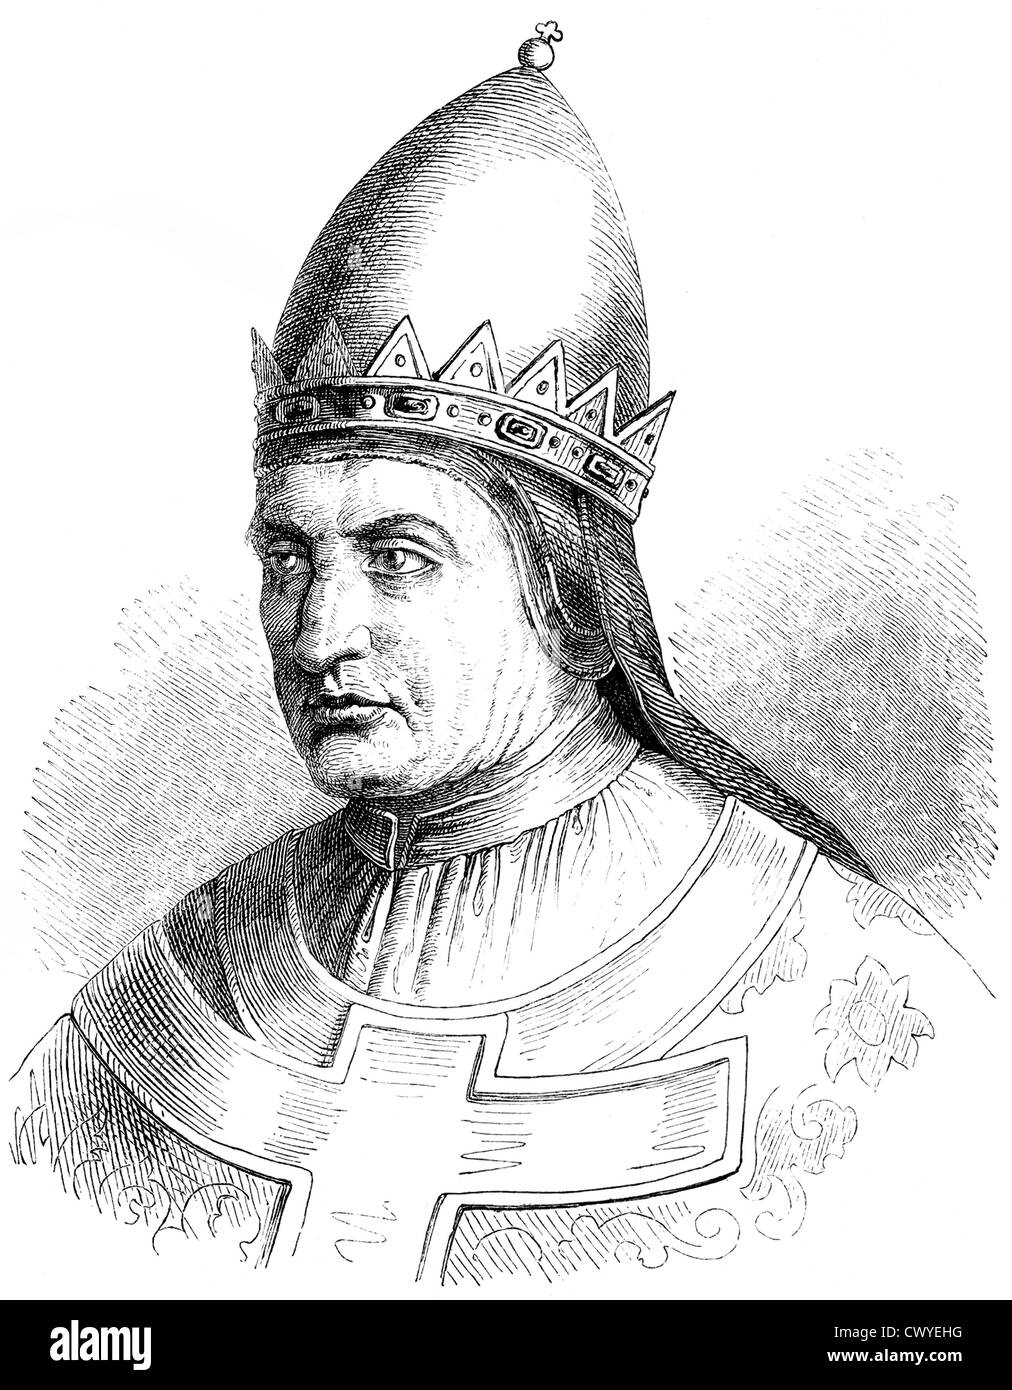 Pope Gregory VII, born Hildebrand of Sovana, Ildebrando da Soana, circa 1020-1085, pope from 1073-1085, - Stock Image